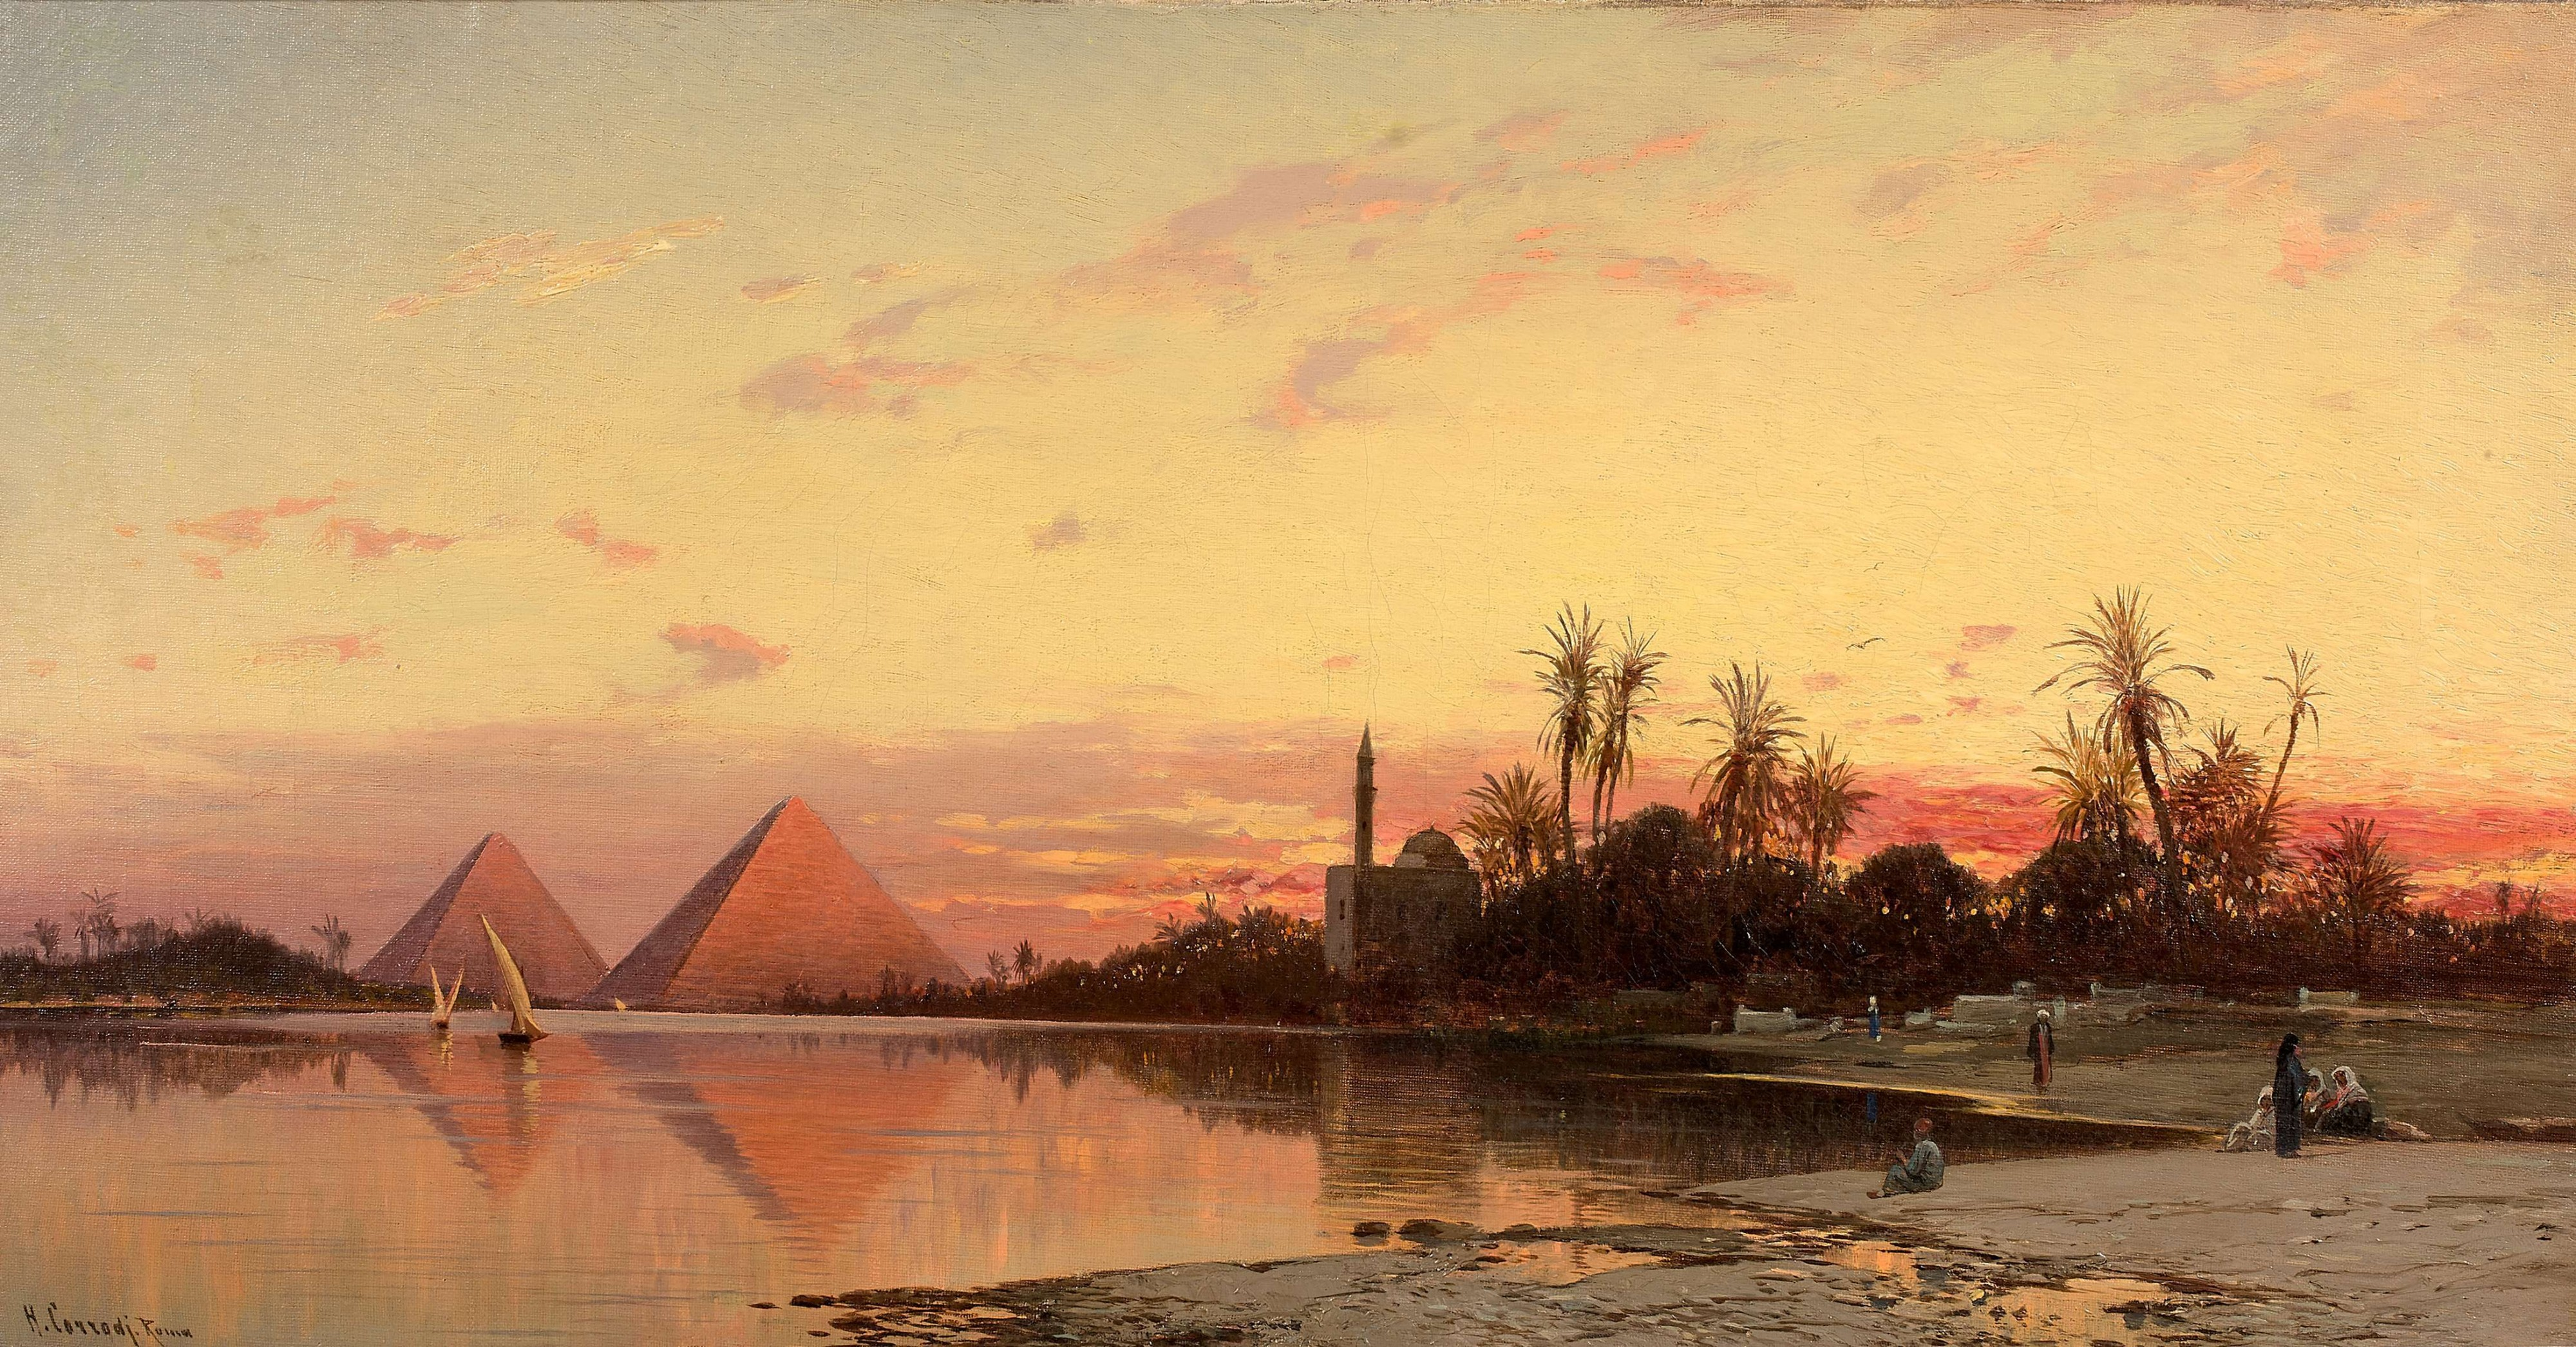 Hermann Corrodi, 'Coucher de soleil sur les pyramide (Sunset on the Pyramids)'. Photo: Artcurial